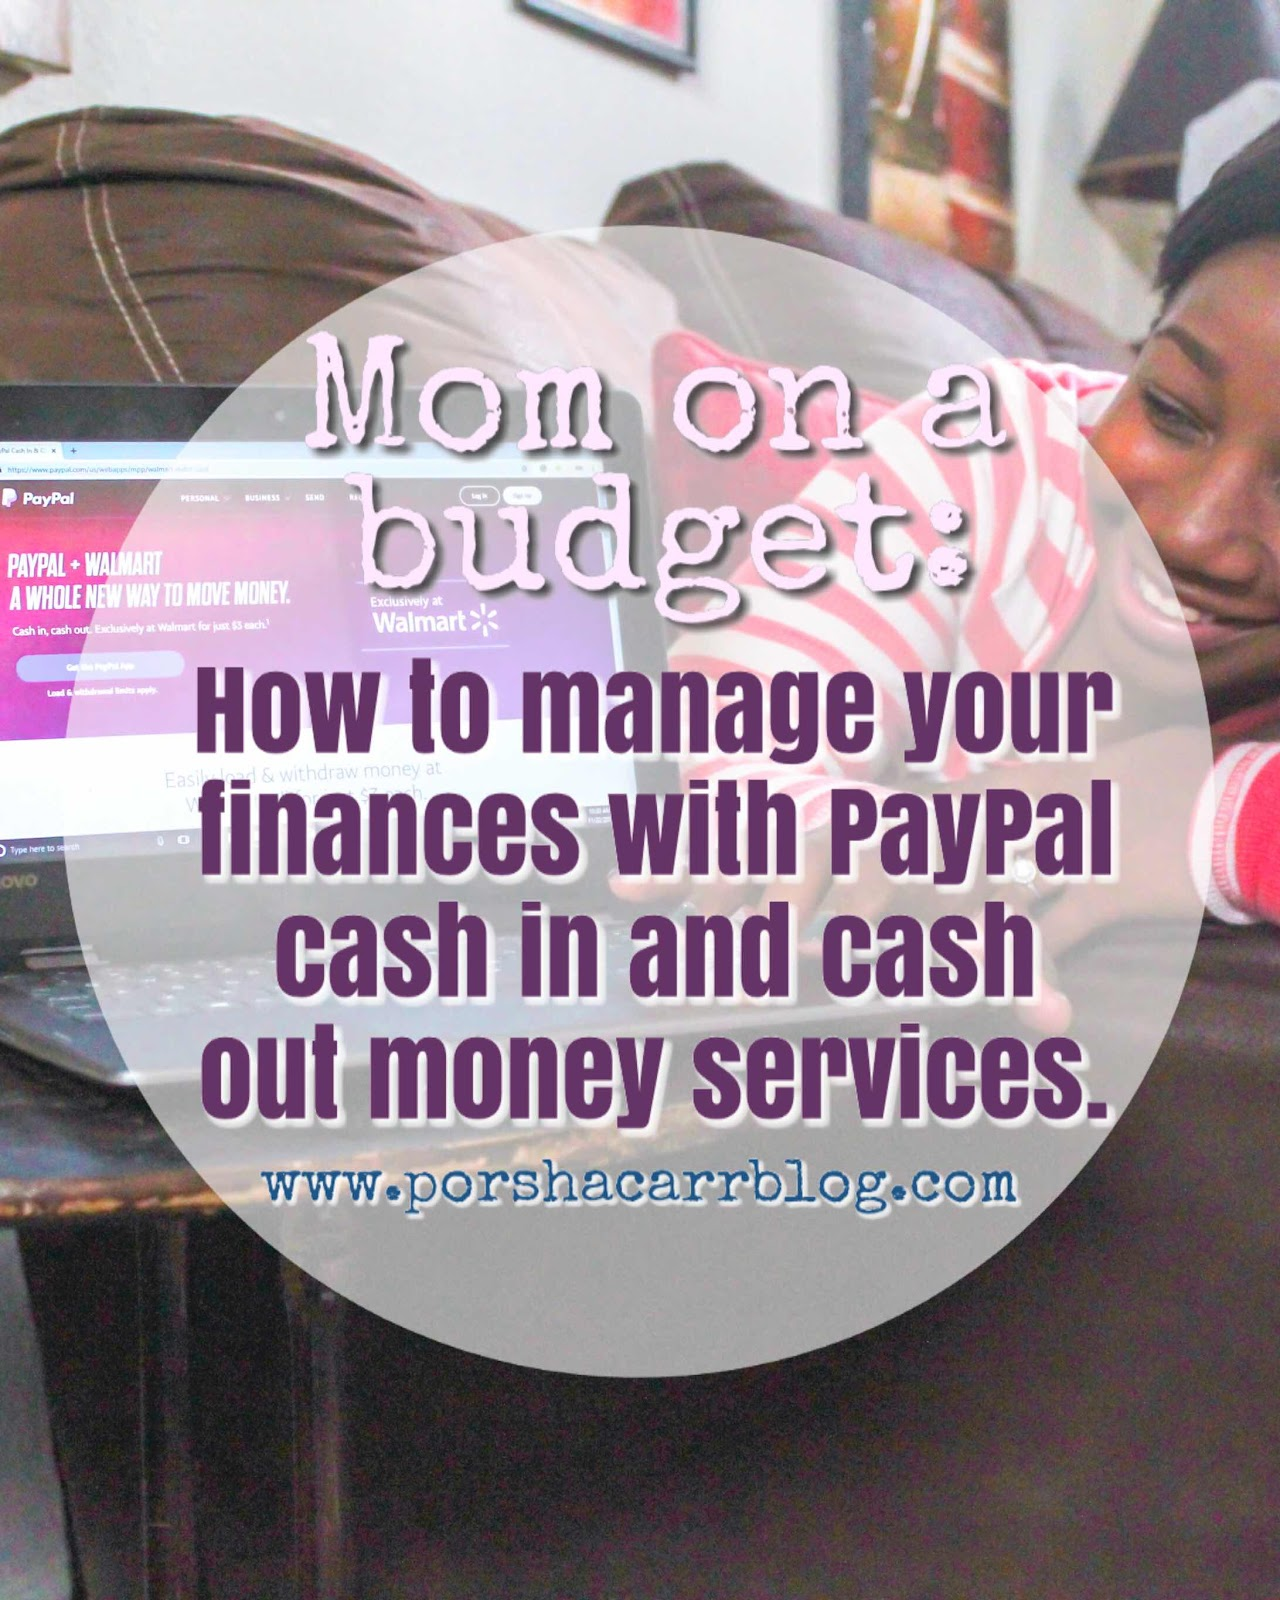 Mom on a budget: How to manage your finances with PayPal